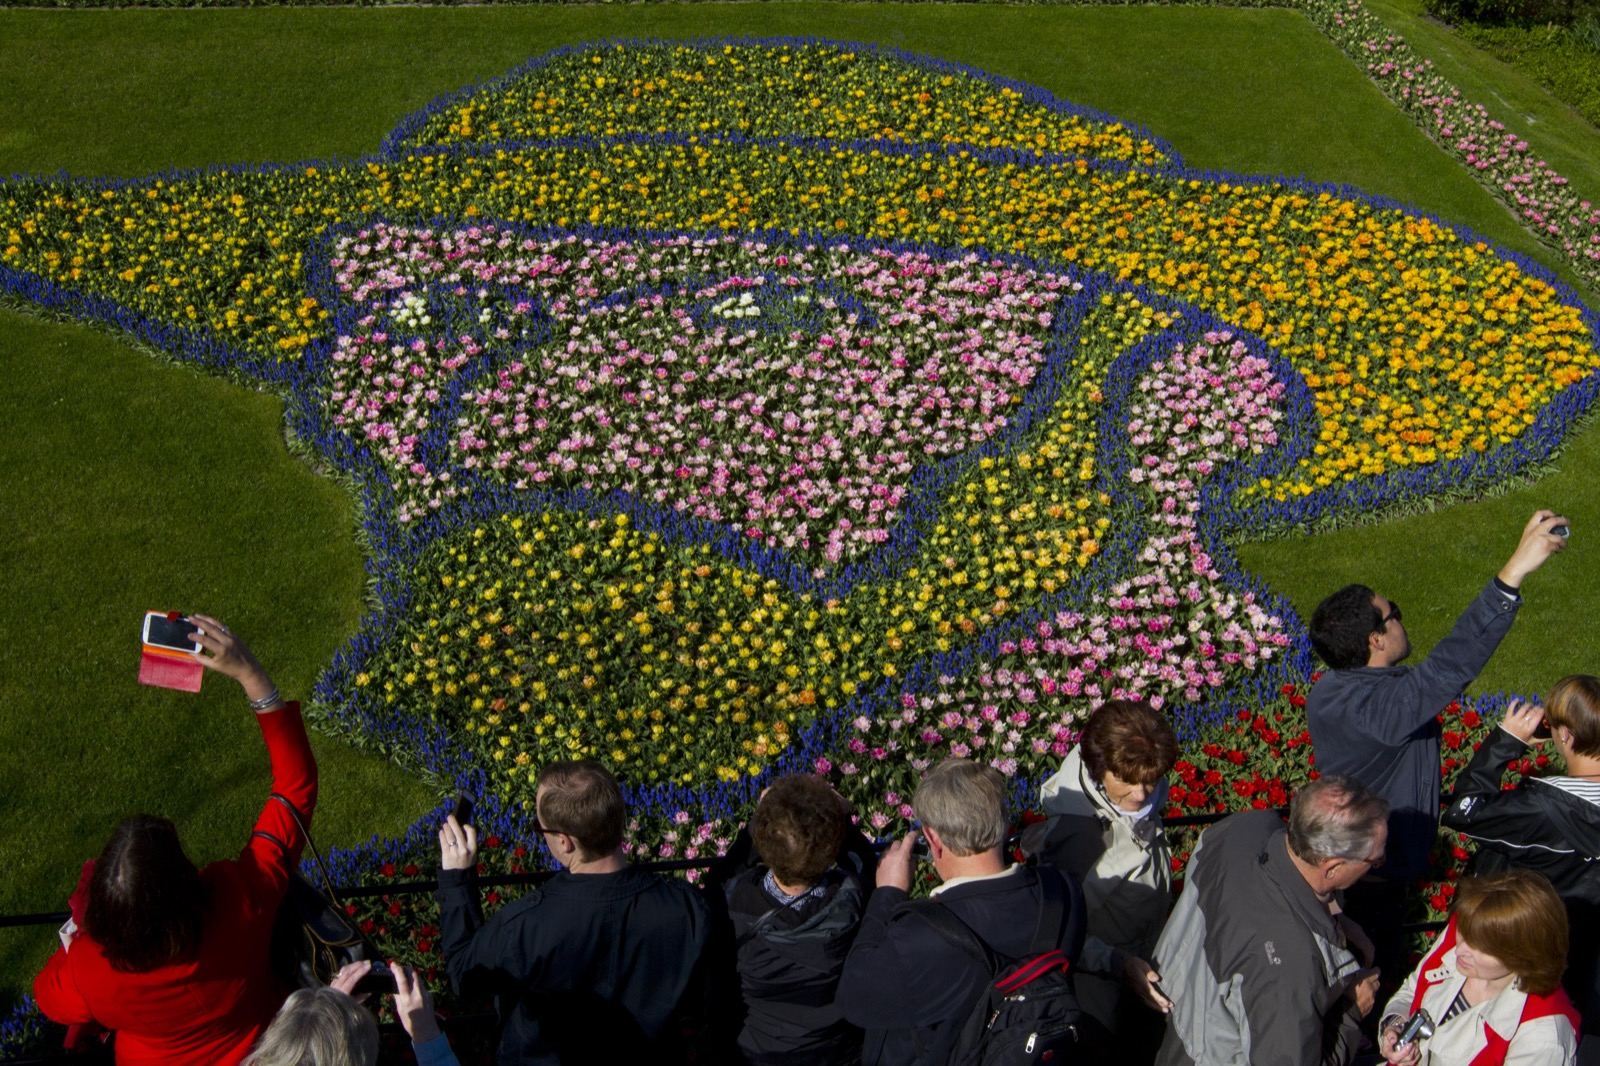 A floral arrangement depicting Dutch master Vincent van Gogh at Keukenhof, a spring park with approximately seven million flower bulbs, in Lisse, Netherlands. AP Photo/Peter Dejong